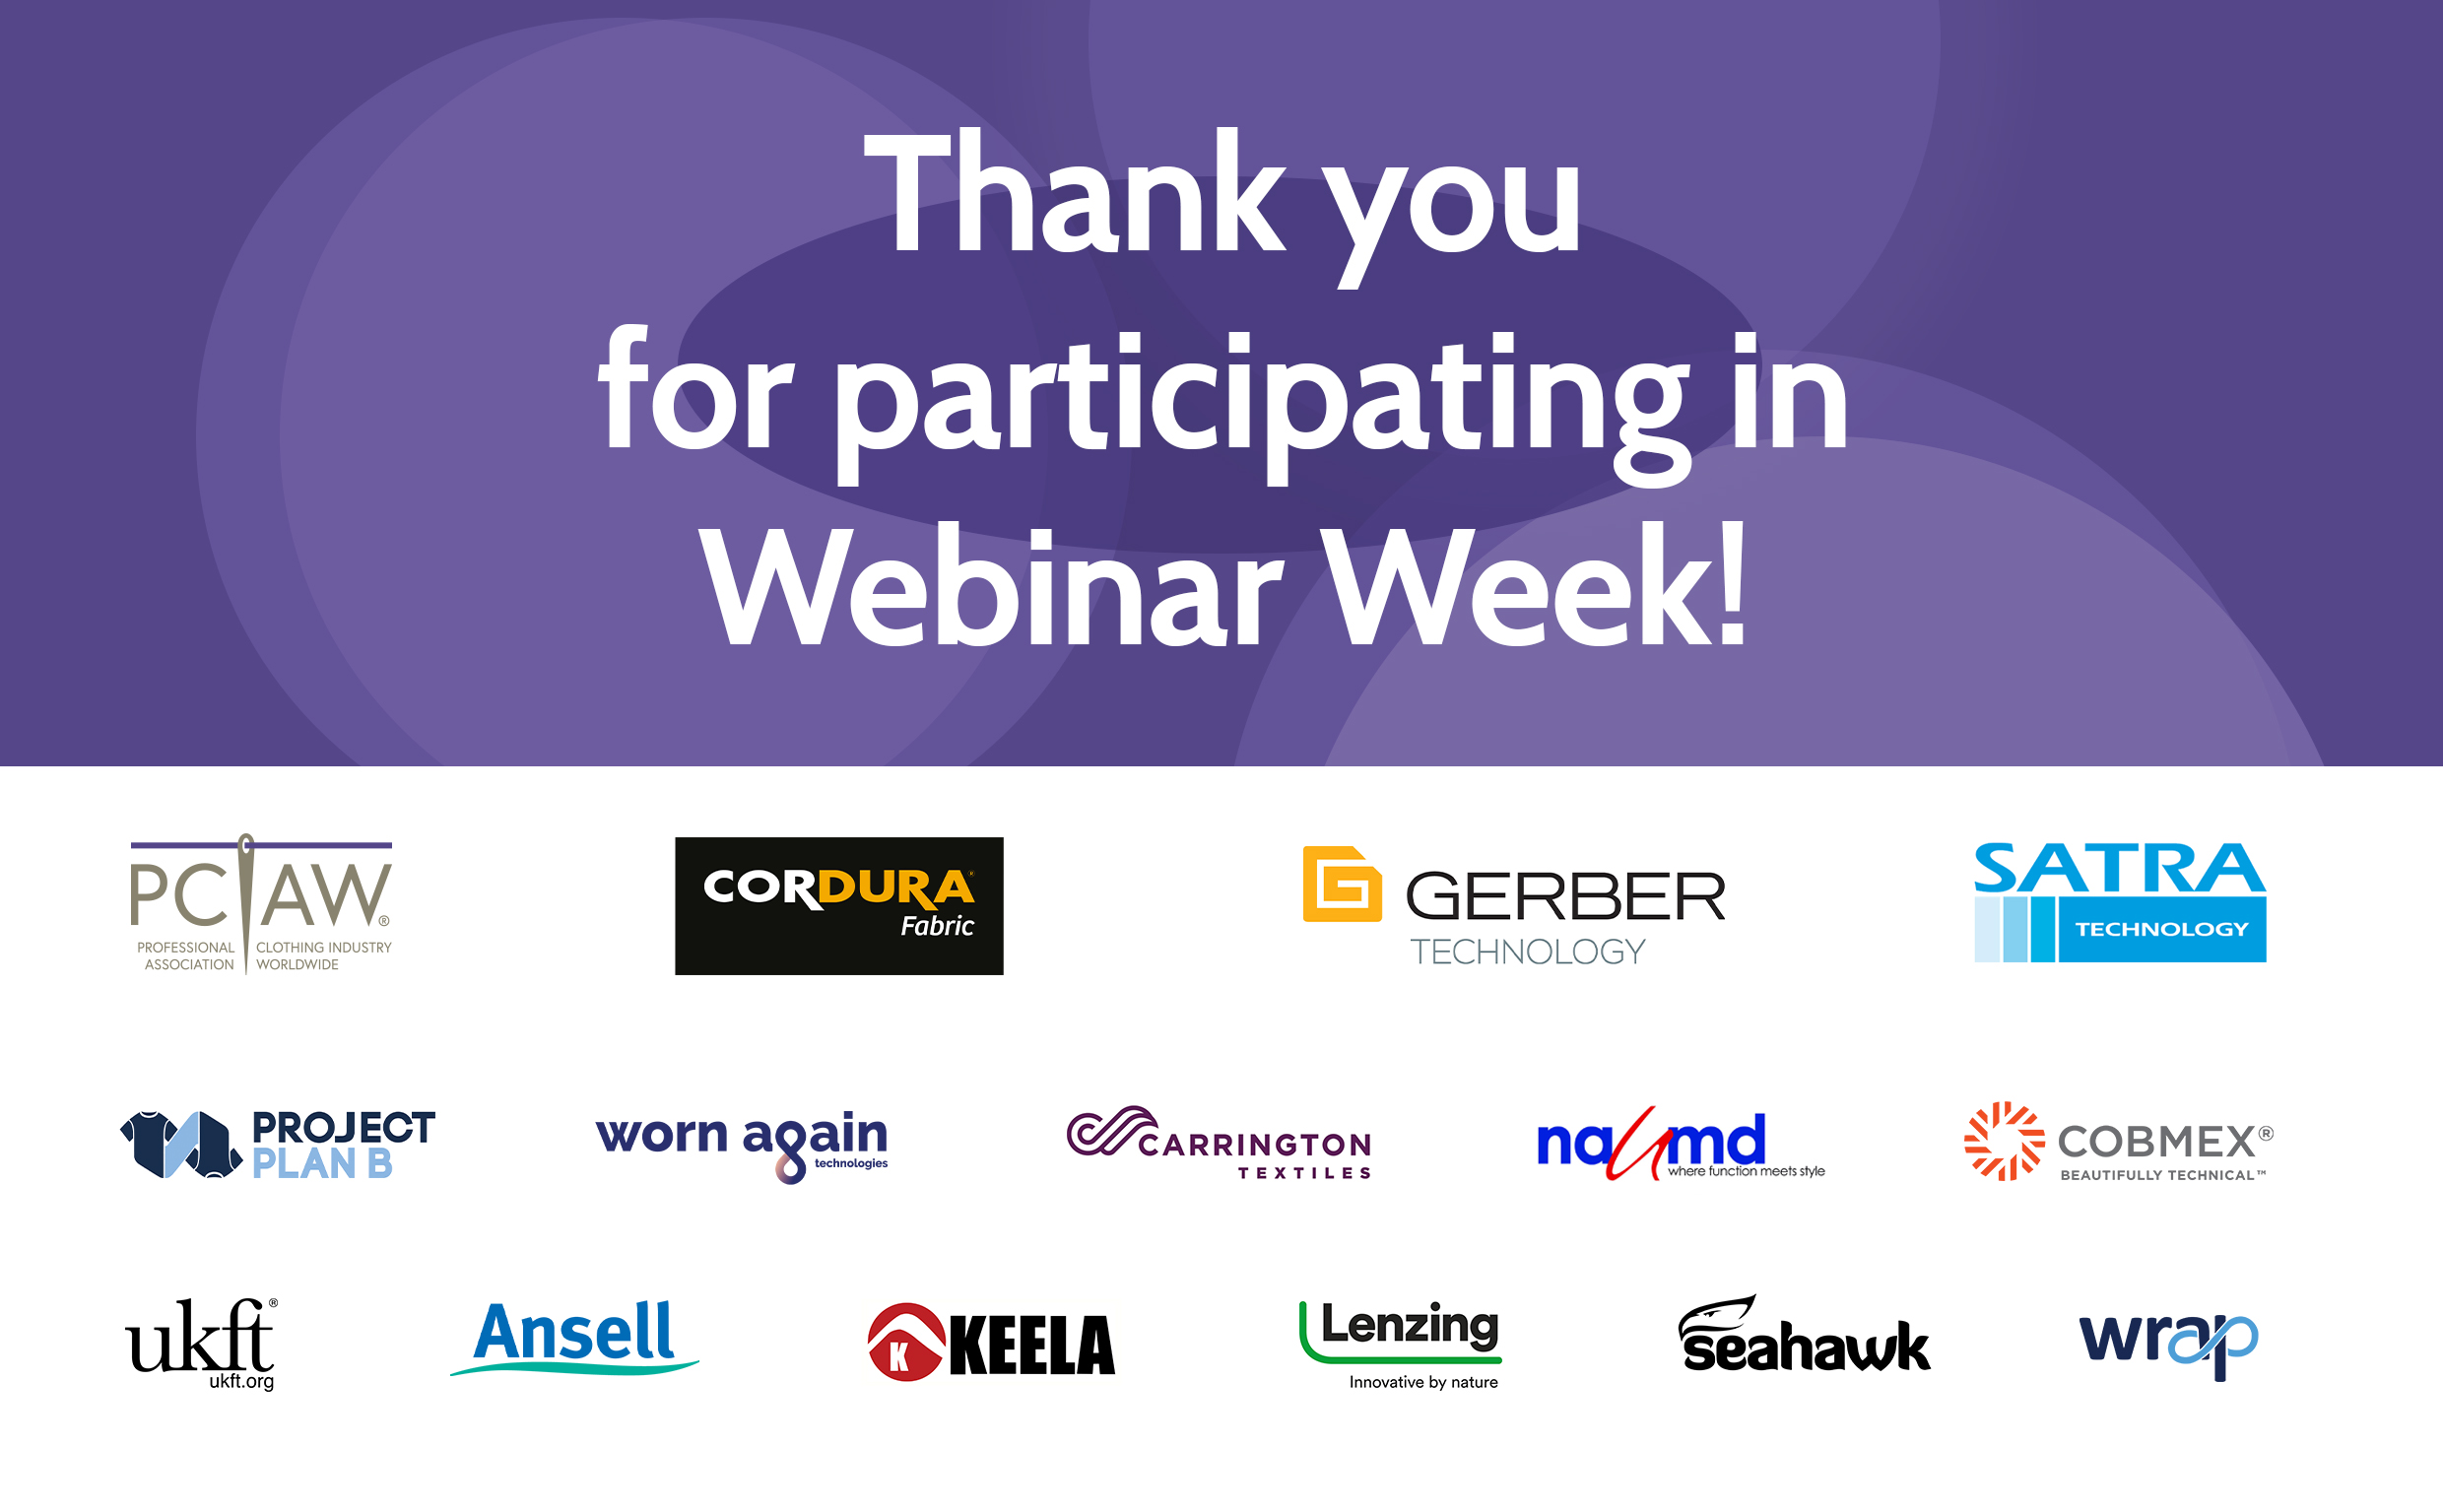 Thank you for participating in Webinar Week